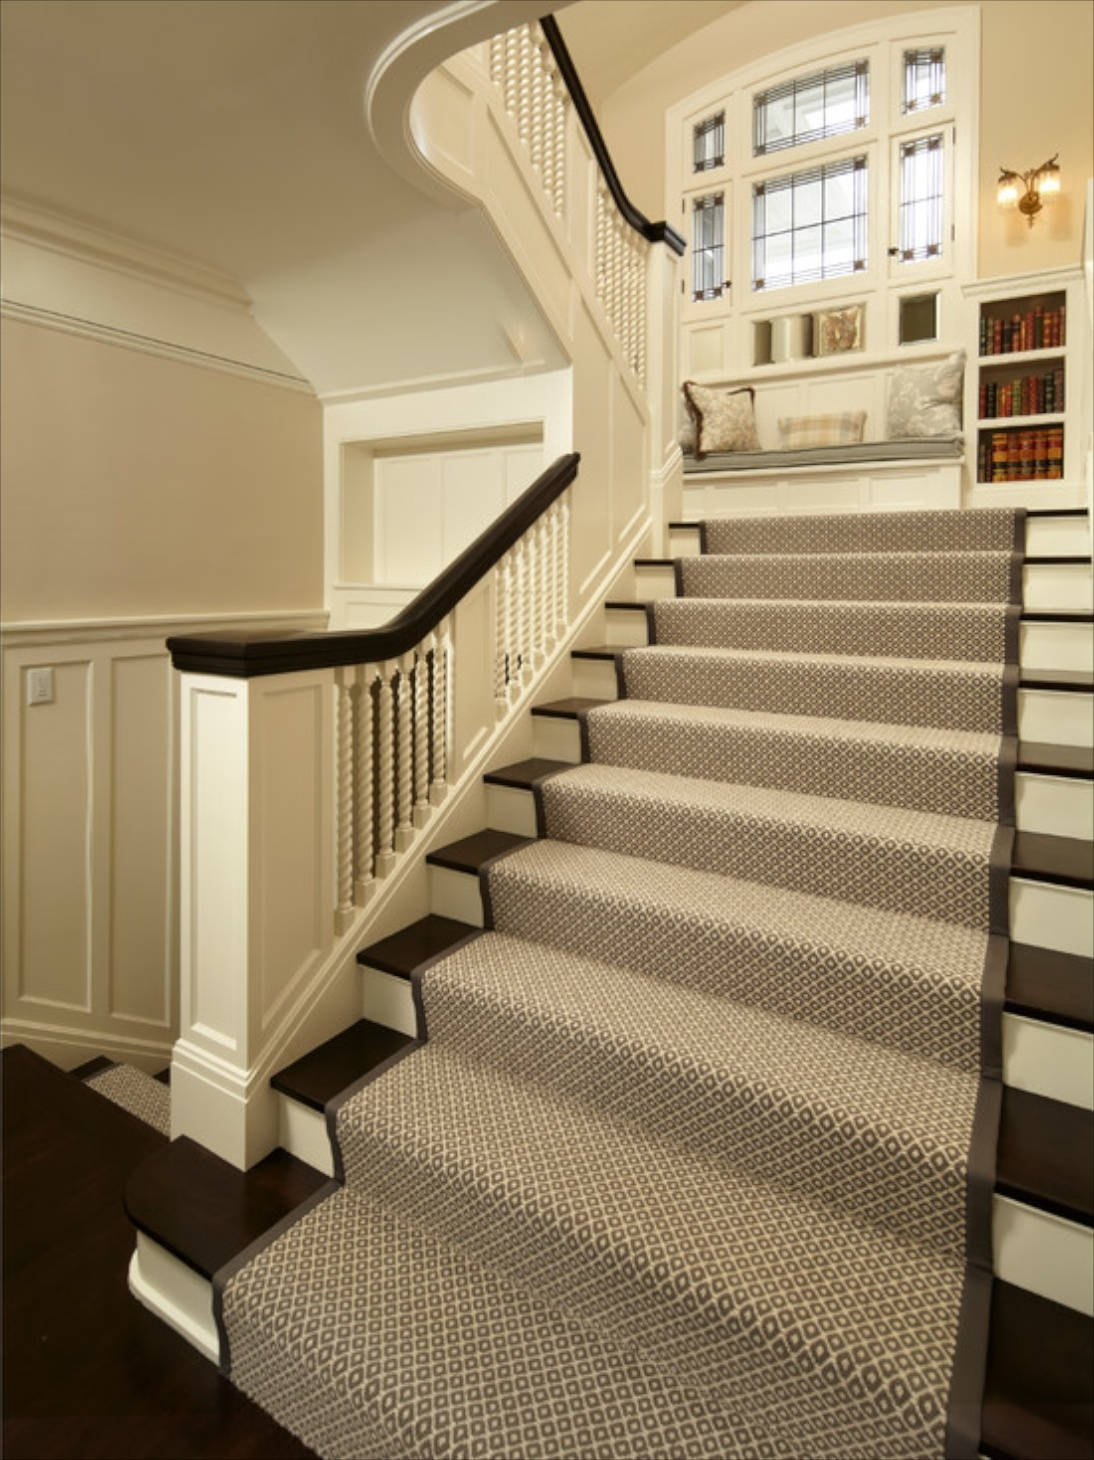 Delicieux Inspiration About Flooring Pretty Stair Treads Carpet For Stair Decoration  Idea Within Individual Stair Tread Rugs